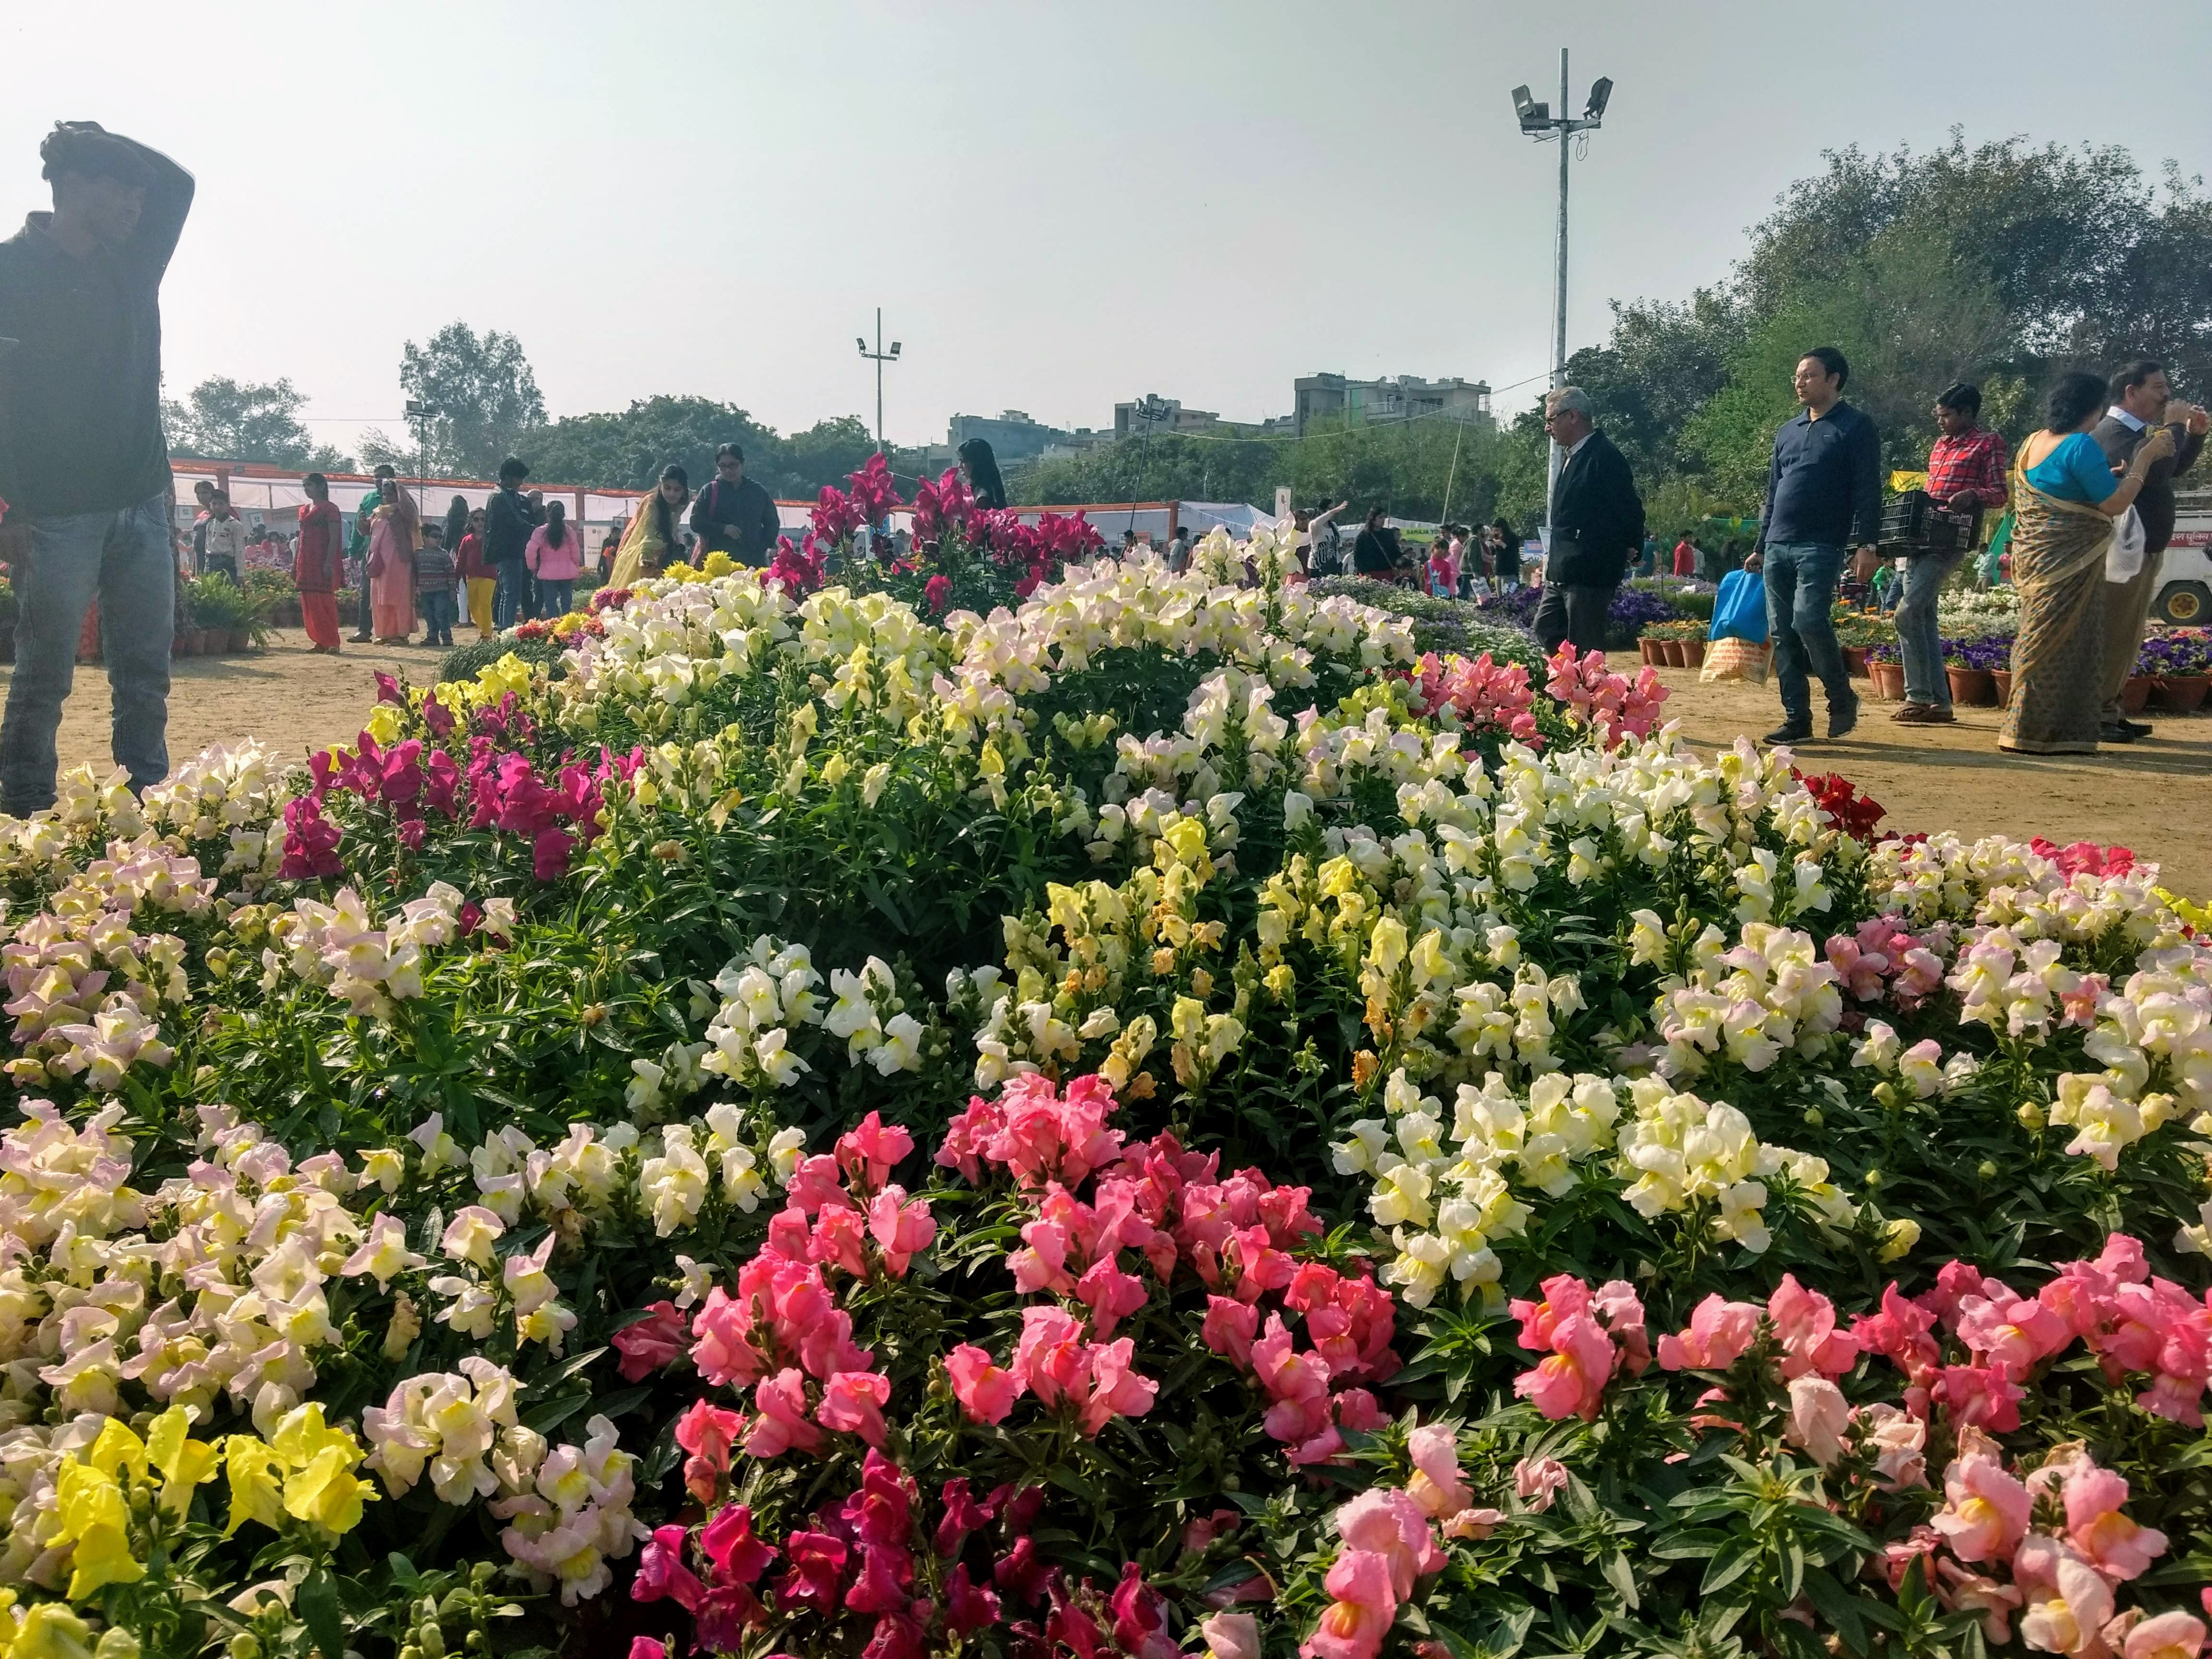 Enjoy the Greater Noida Flower Show 2019 with Family at City park